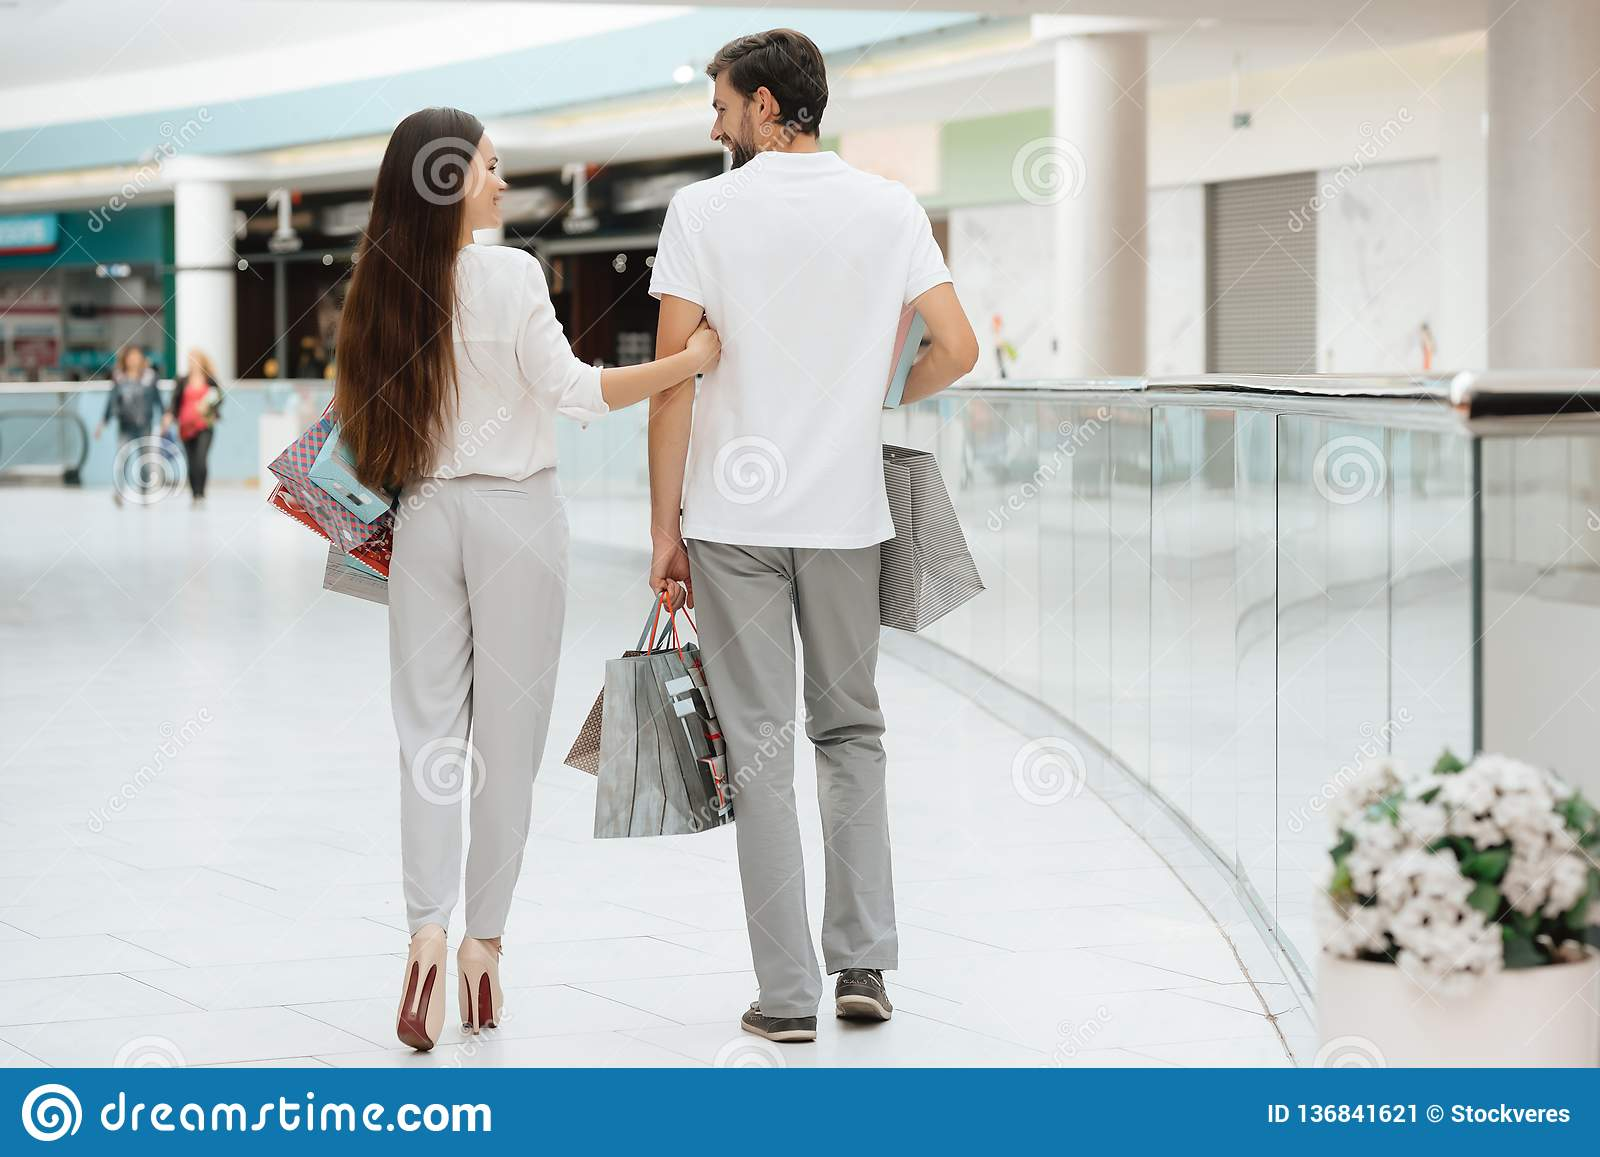 Man and woman are walking to another store in shopping mall. Couple is happy.